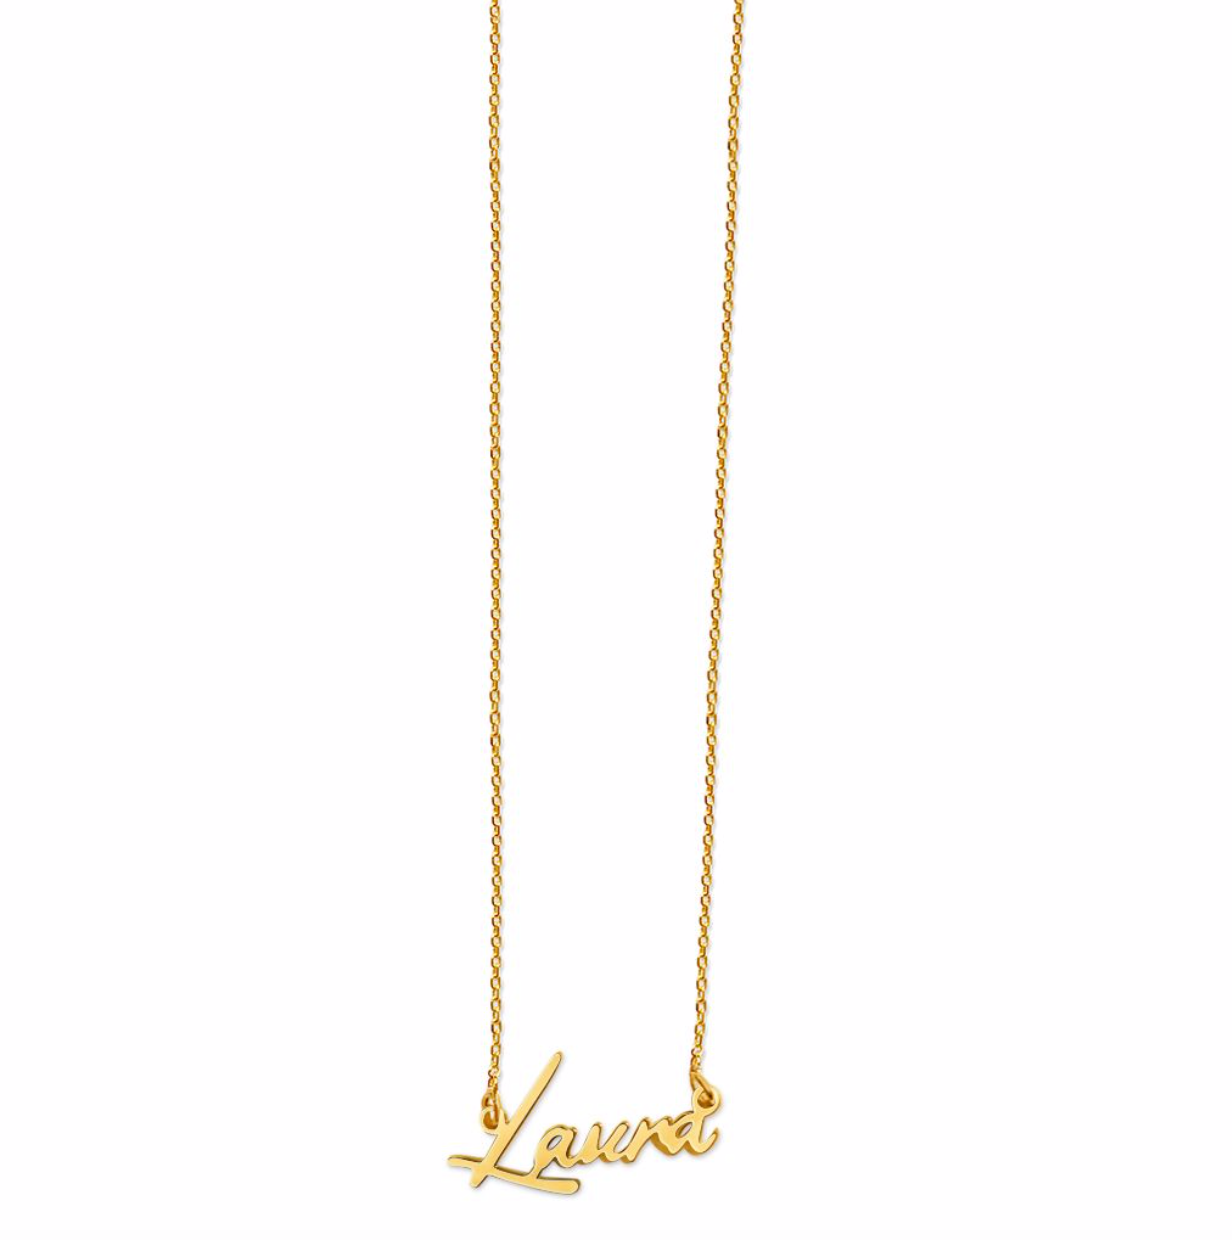 Laura Tiny Name Necklace